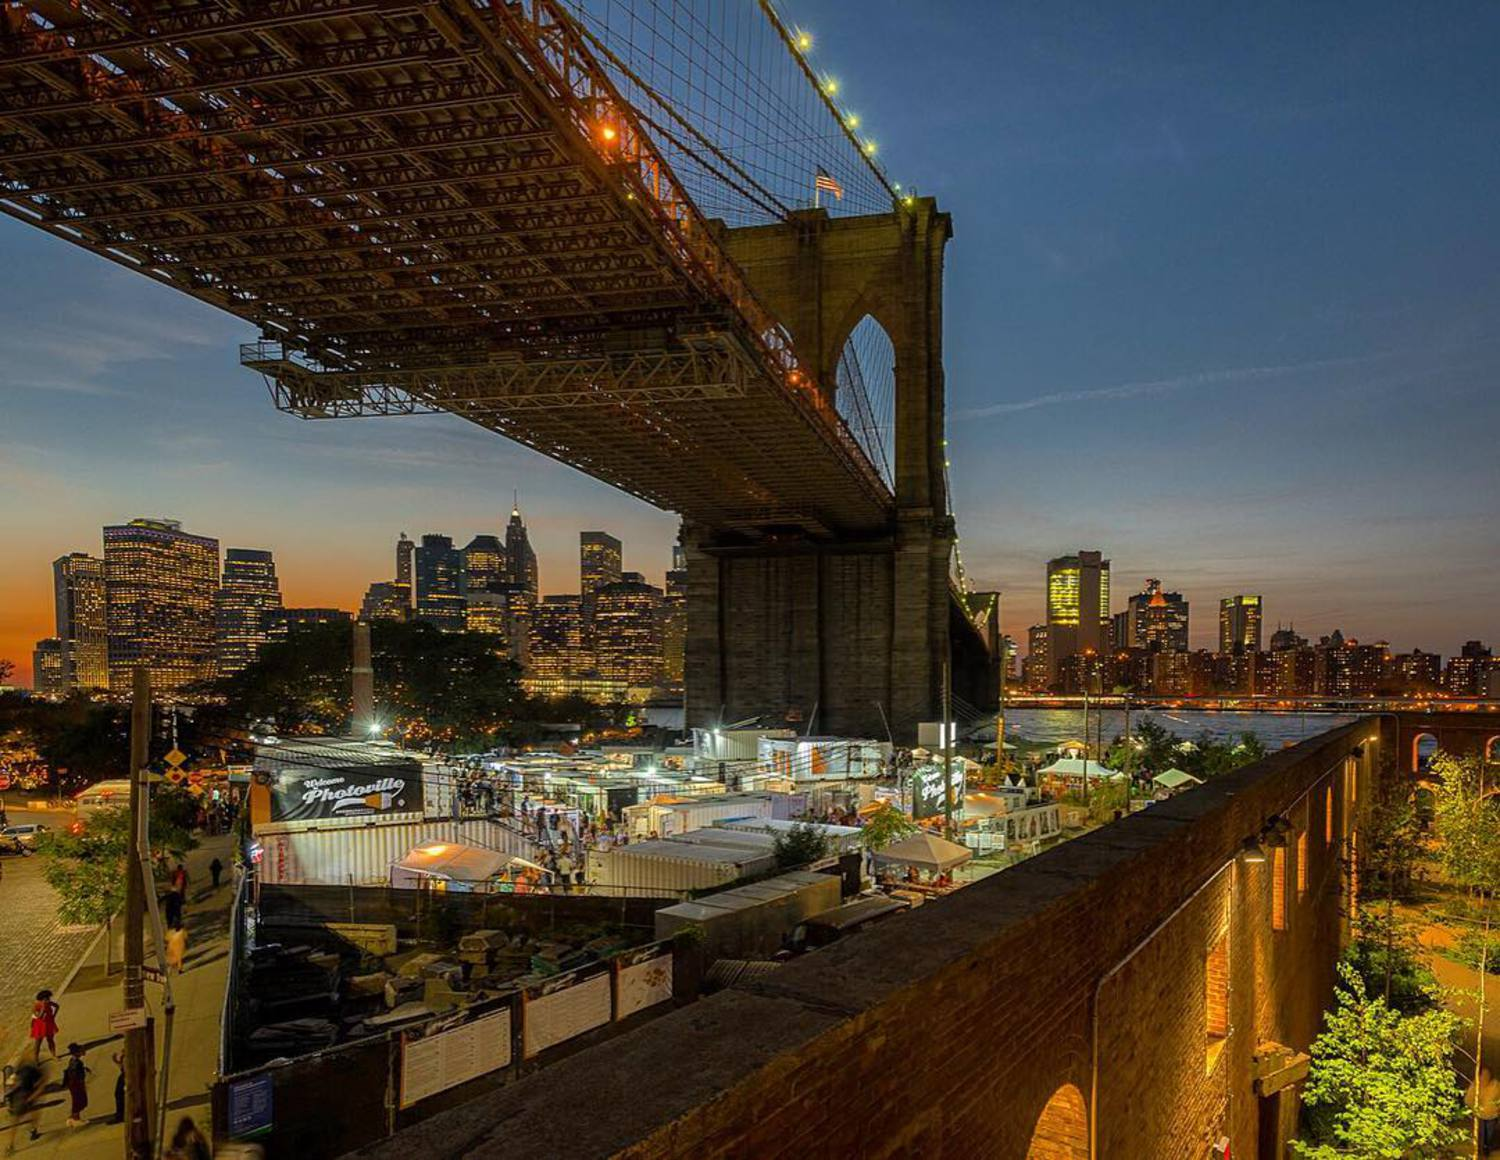 Nestled under the Brooklyn Bridge and surrounded by the Brooklyn Bridge Park – Photoville 2016 #photographyexhibition #photoville2016 #dumbo #skyline #photography #nycparks @photovillenyc @brooklynbridgepark @dumbobid @what_i_saw_in_nyc #seeyourcity #art